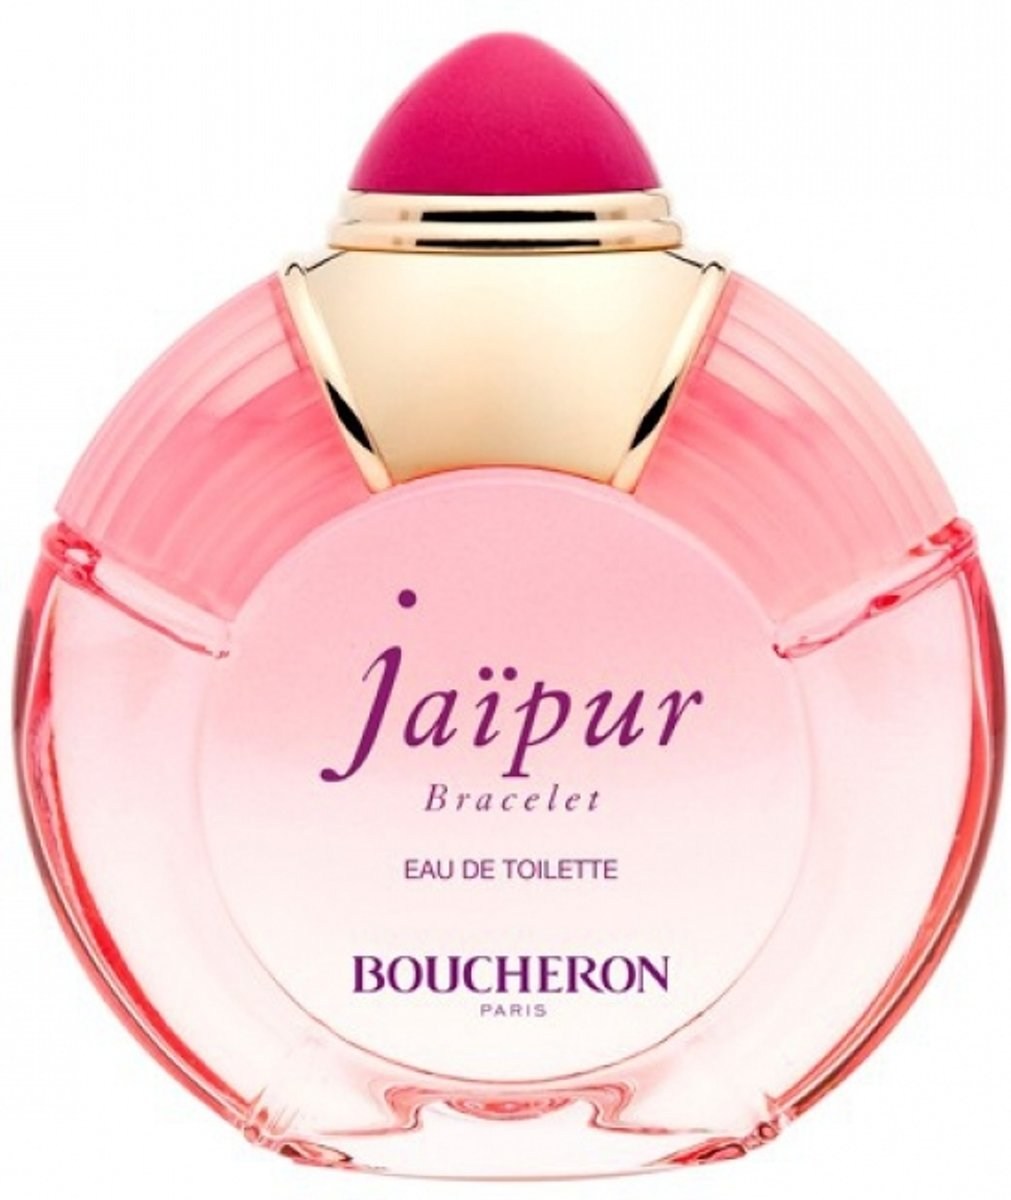 Boucheron Jaïpur Bracelet Limited Edition Eau de Toilette Spray 100 ml